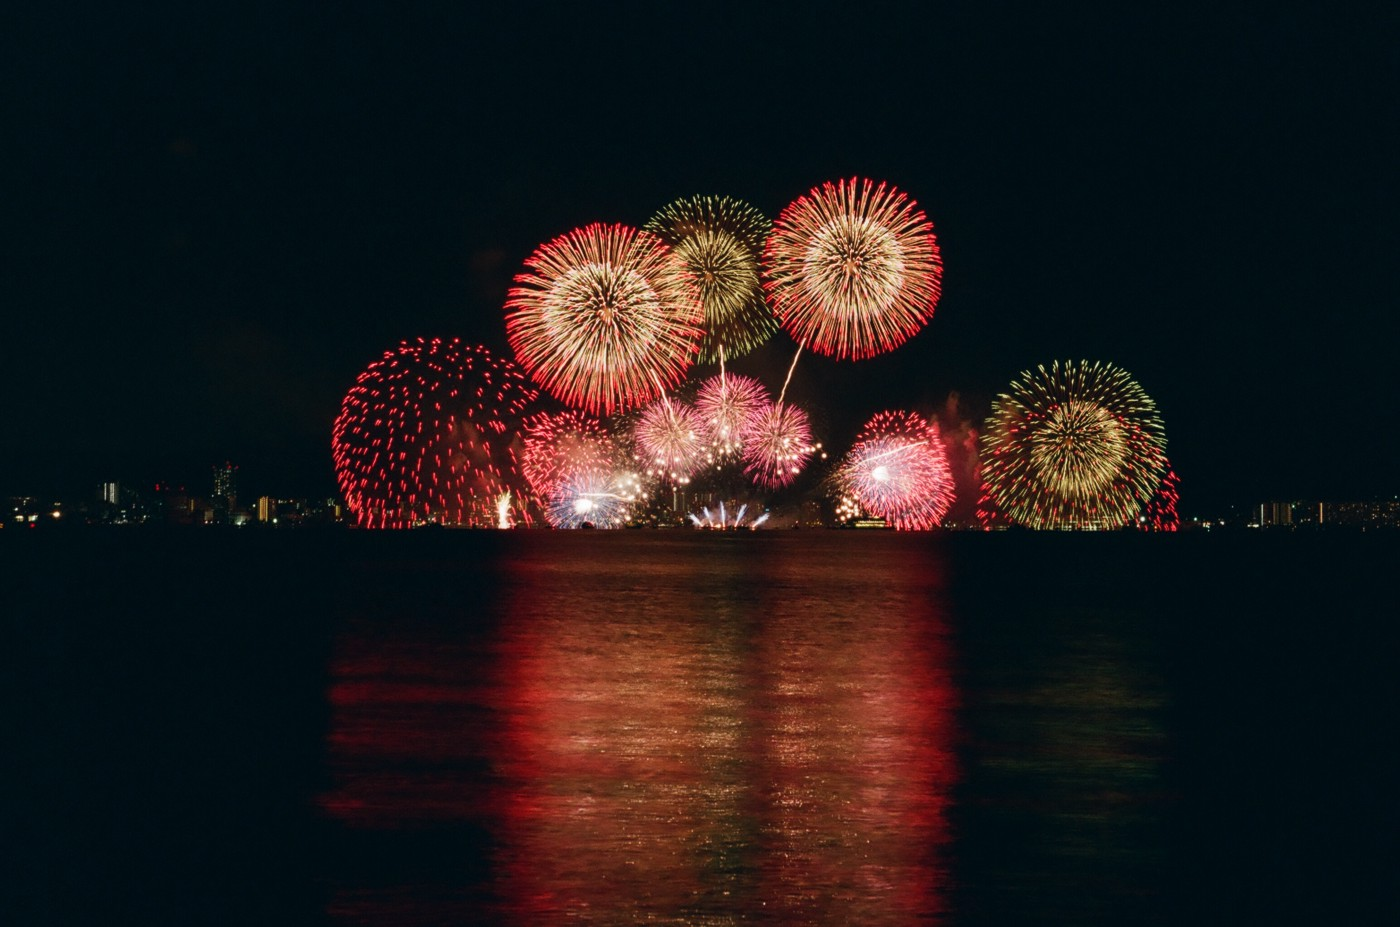 An image of fireworks in the night.